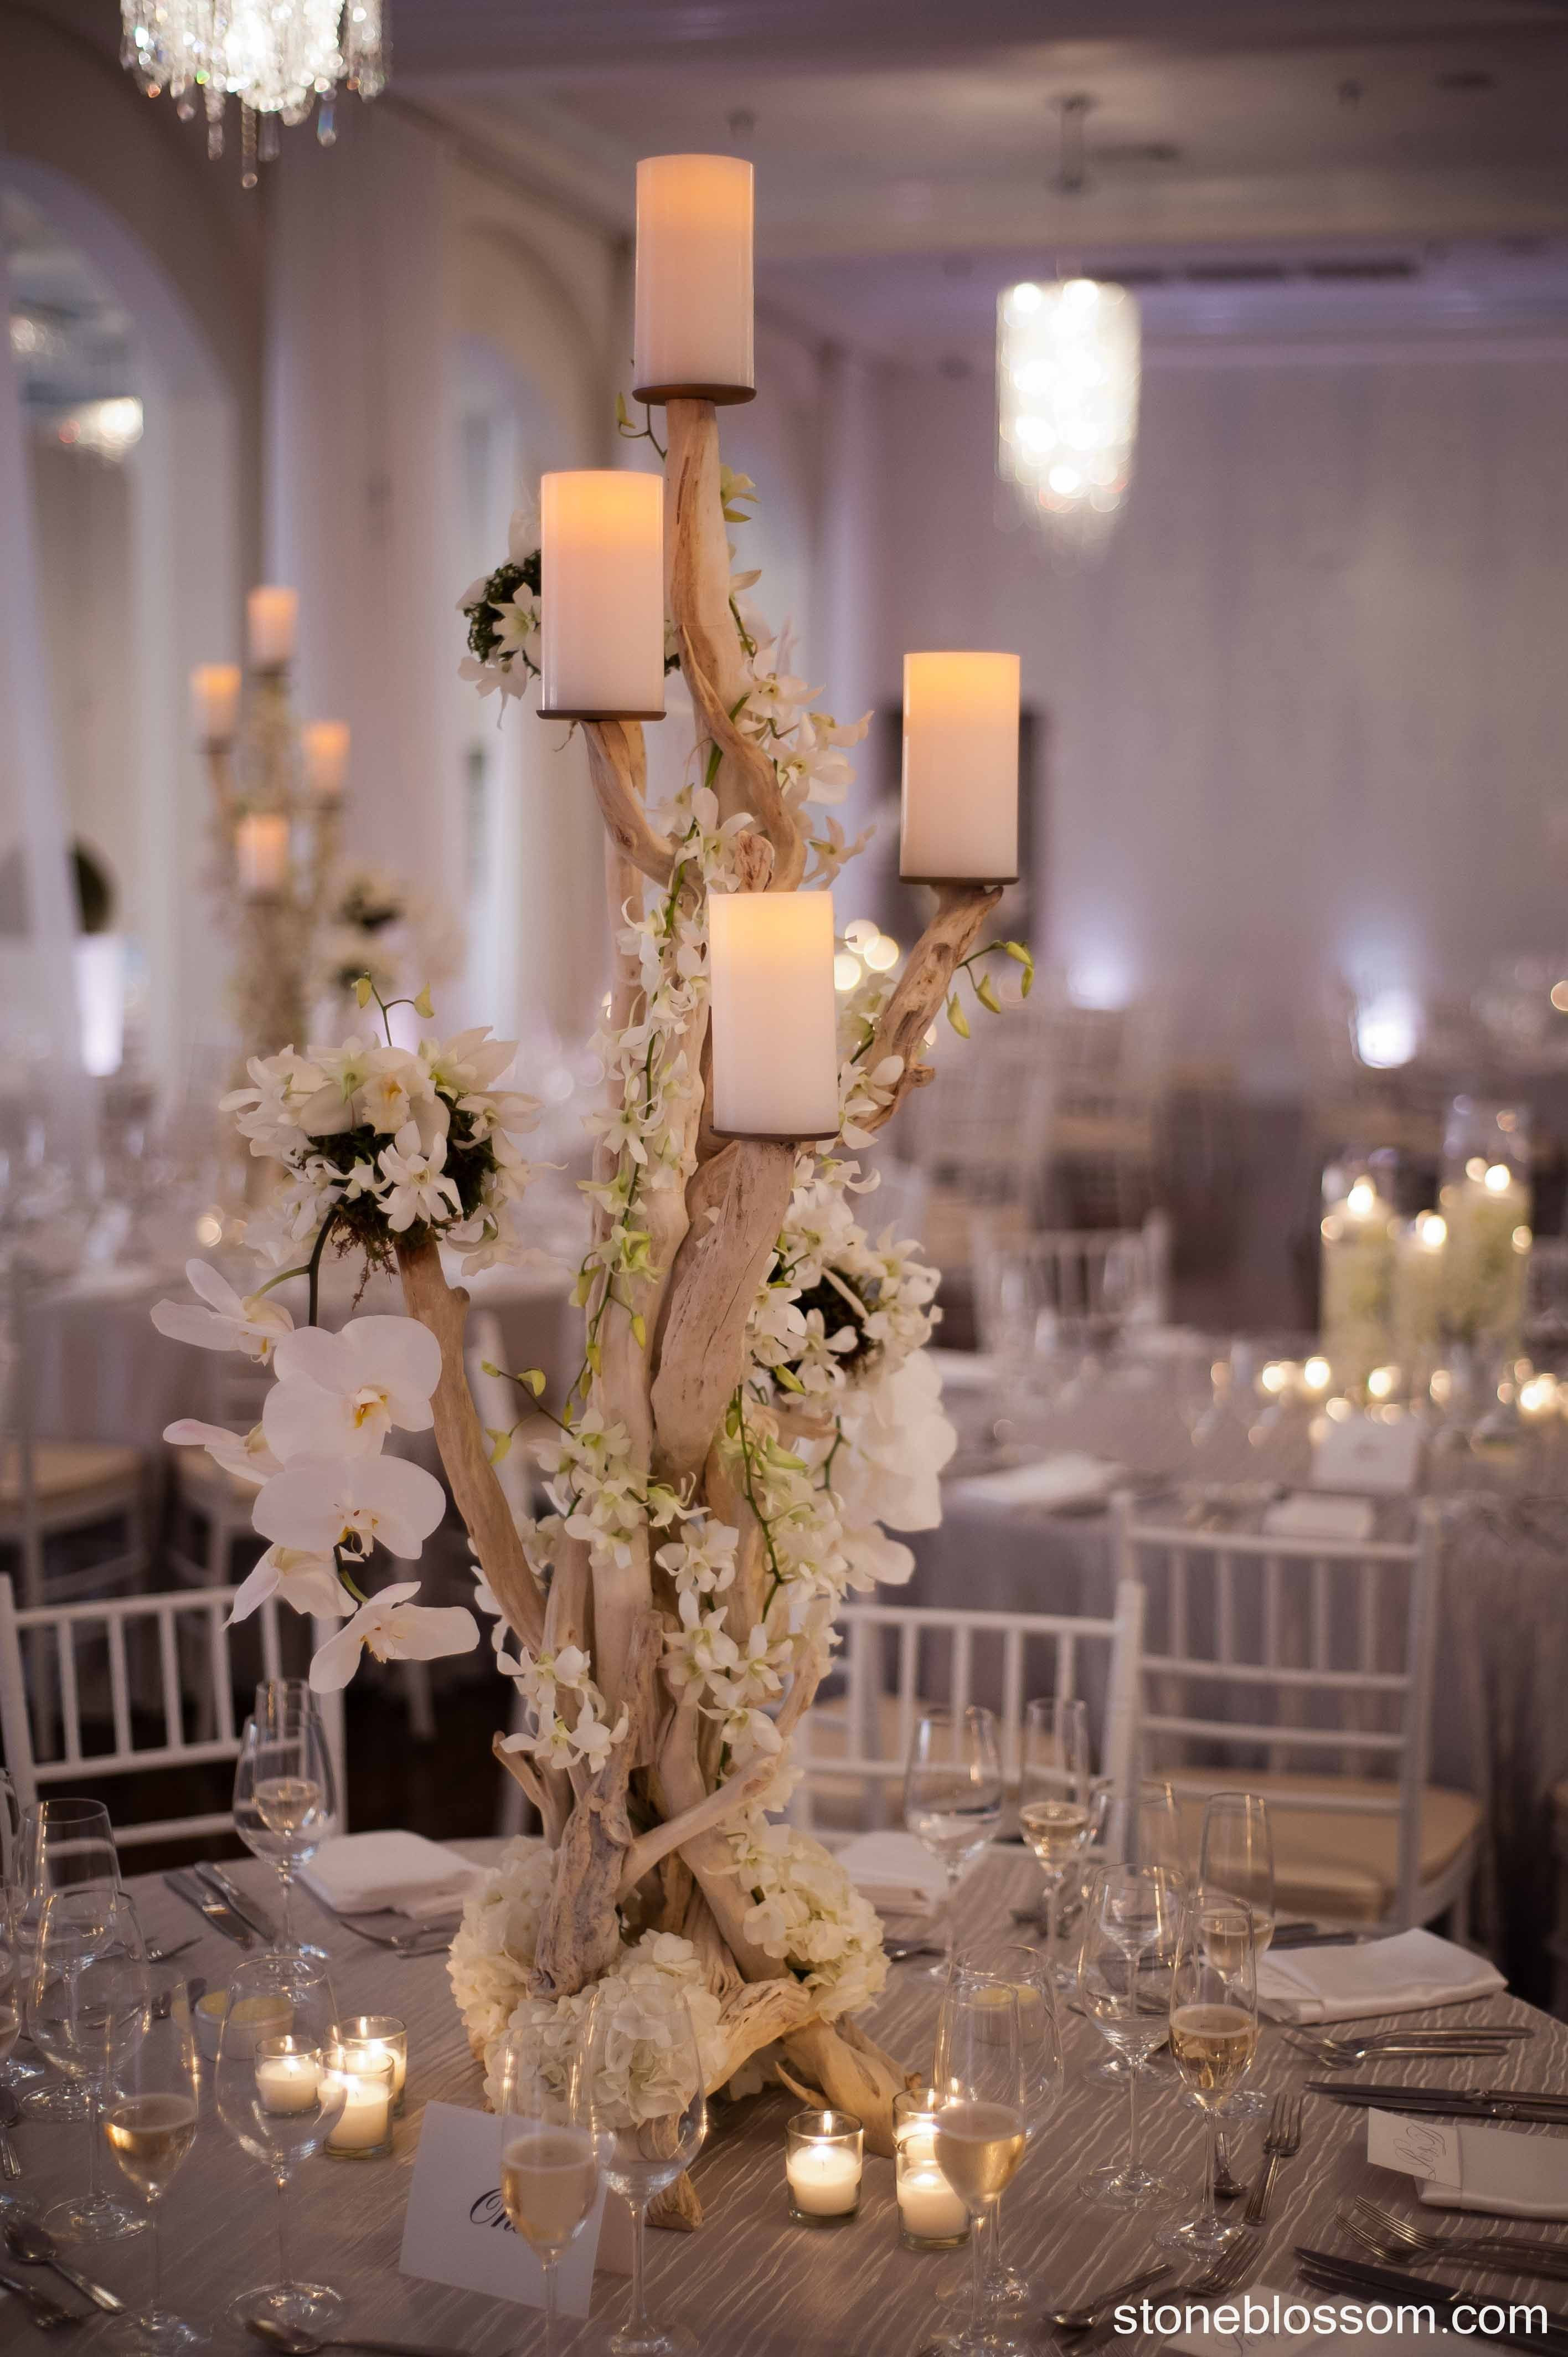 Tall Cylinder Vase Centerpiece Ideas Of Decorative Branches for Weddings Awesome Tall Vase Centerpiece Ideas with Decorative Branches for Weddings Luxury Floral Amp event Design by Stoneblossom Of Decorative Branches for Weddings